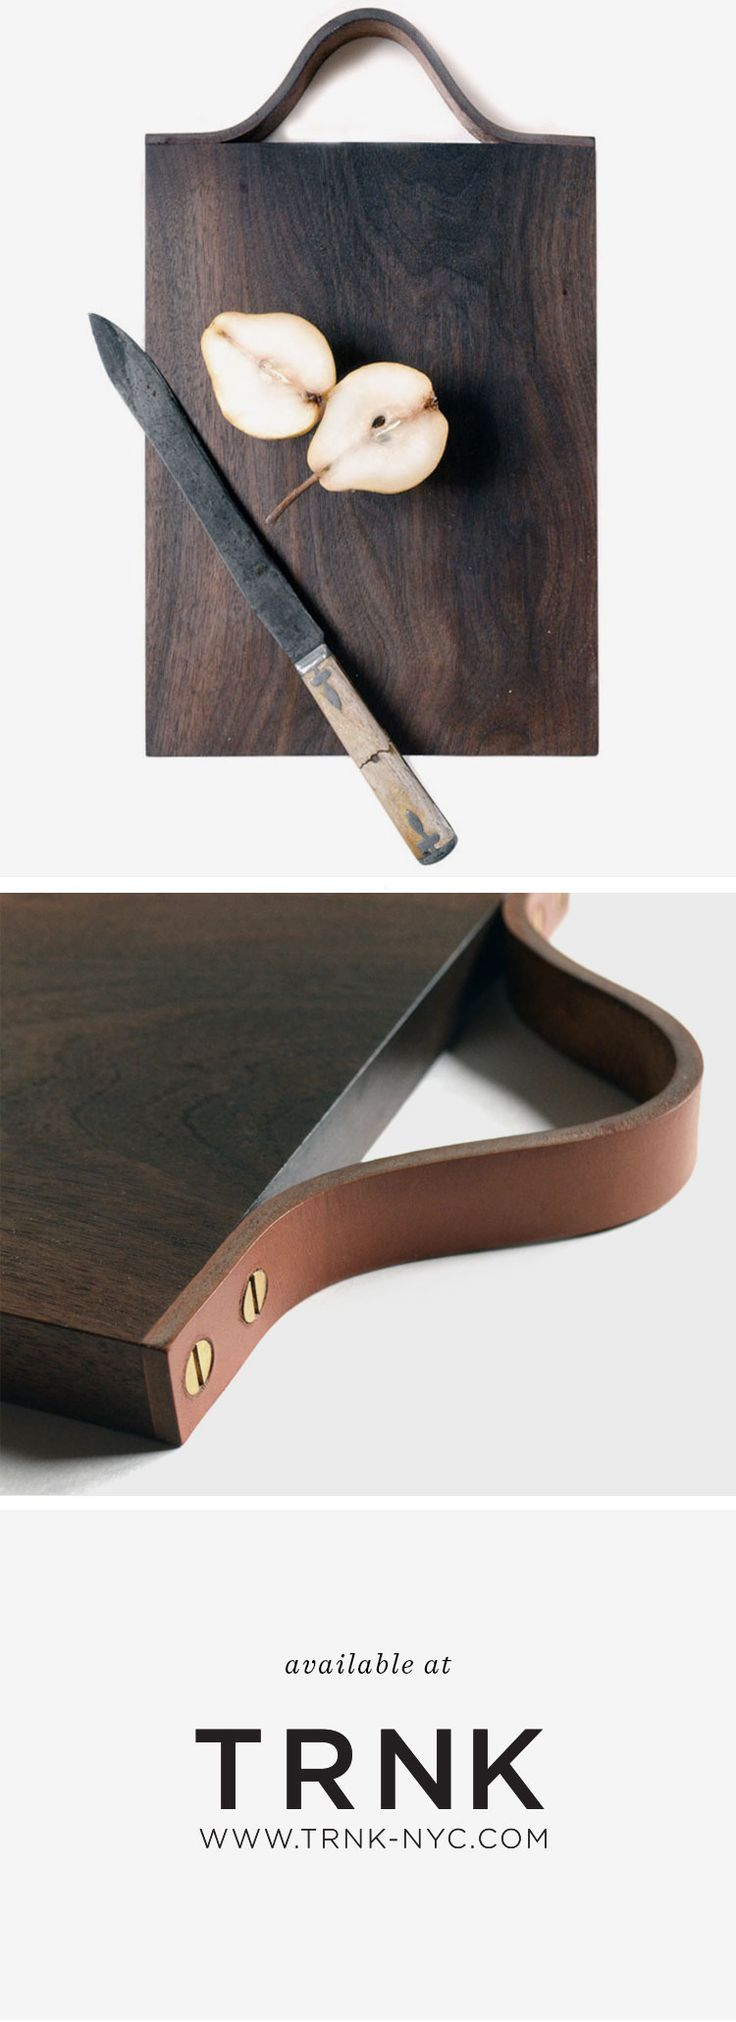 A handcrafted walnut serving board with a saddle leather handle.